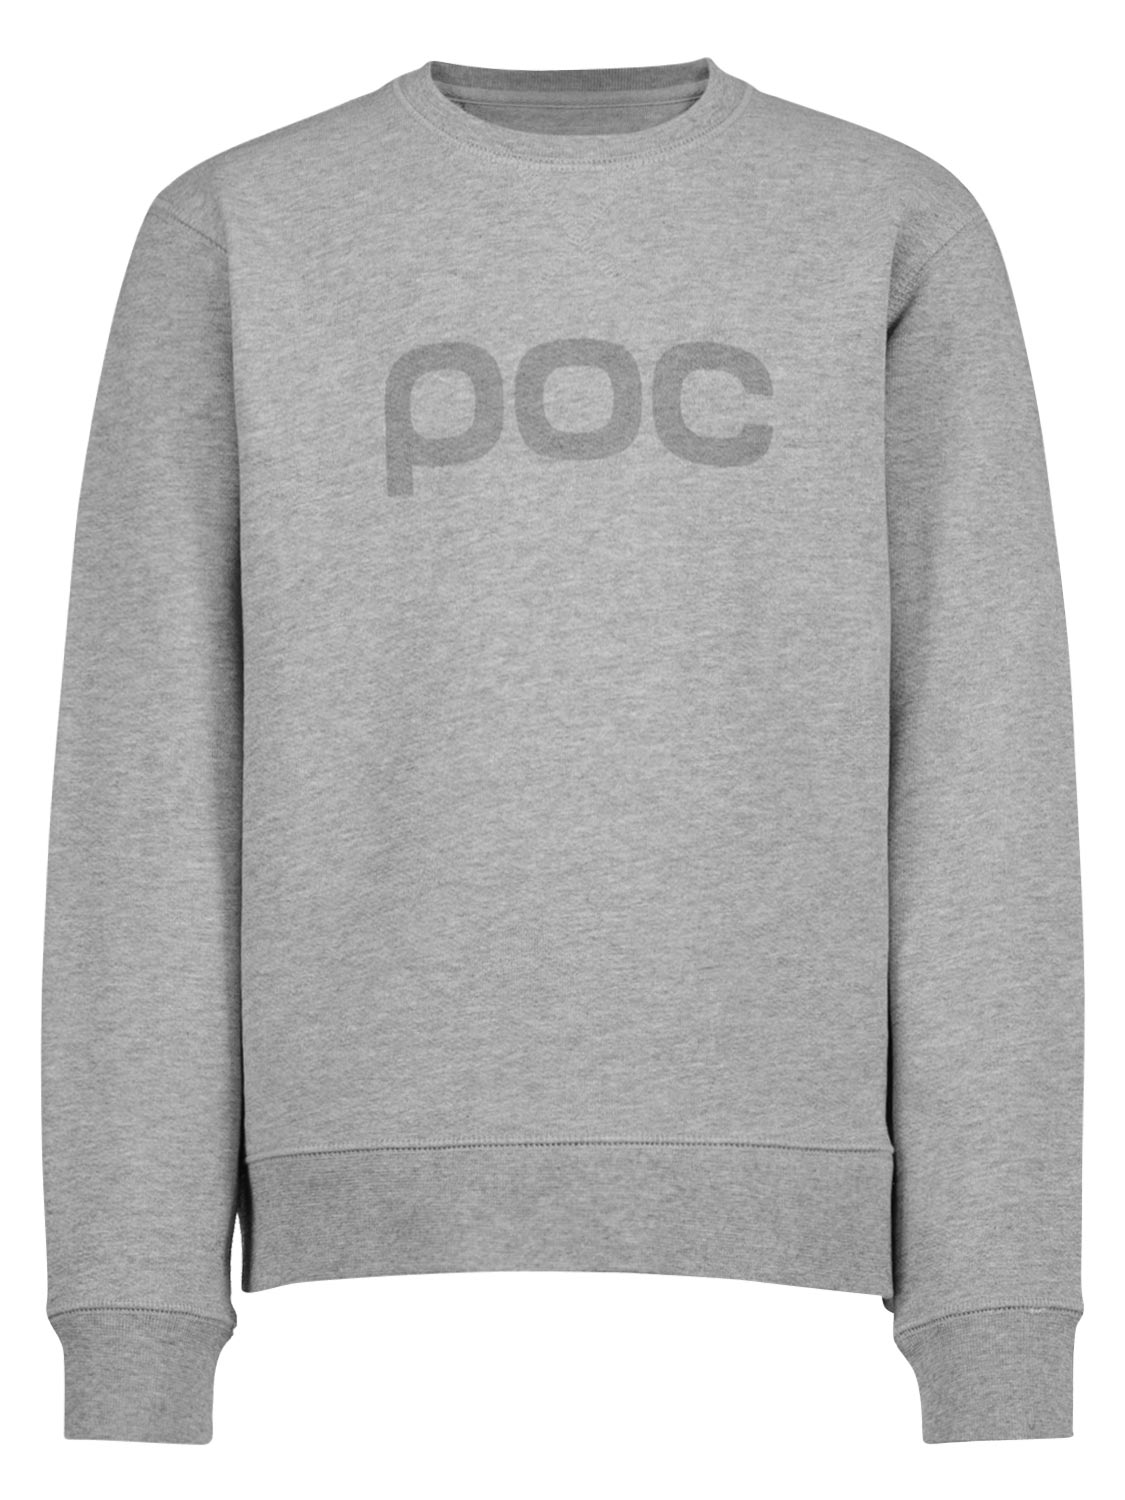 Poc Kids Sweatshirt For For Boys And For Girls In Grau